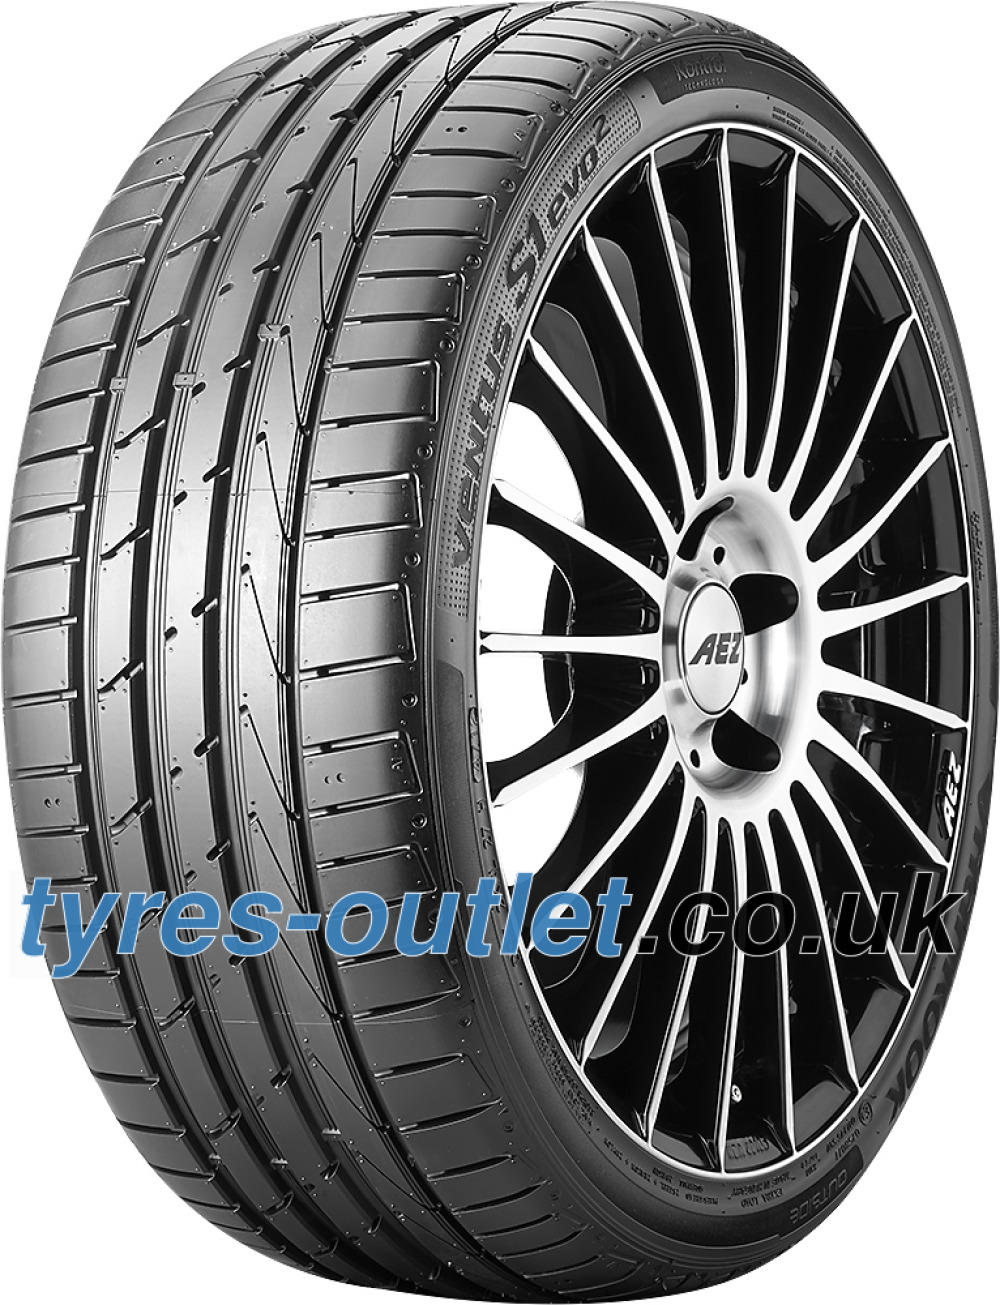 Hankook Ventus S1 Evo 2 K117 ( 305/30 ZR20 (103Y) XL with rim protection (MFS) SBL )